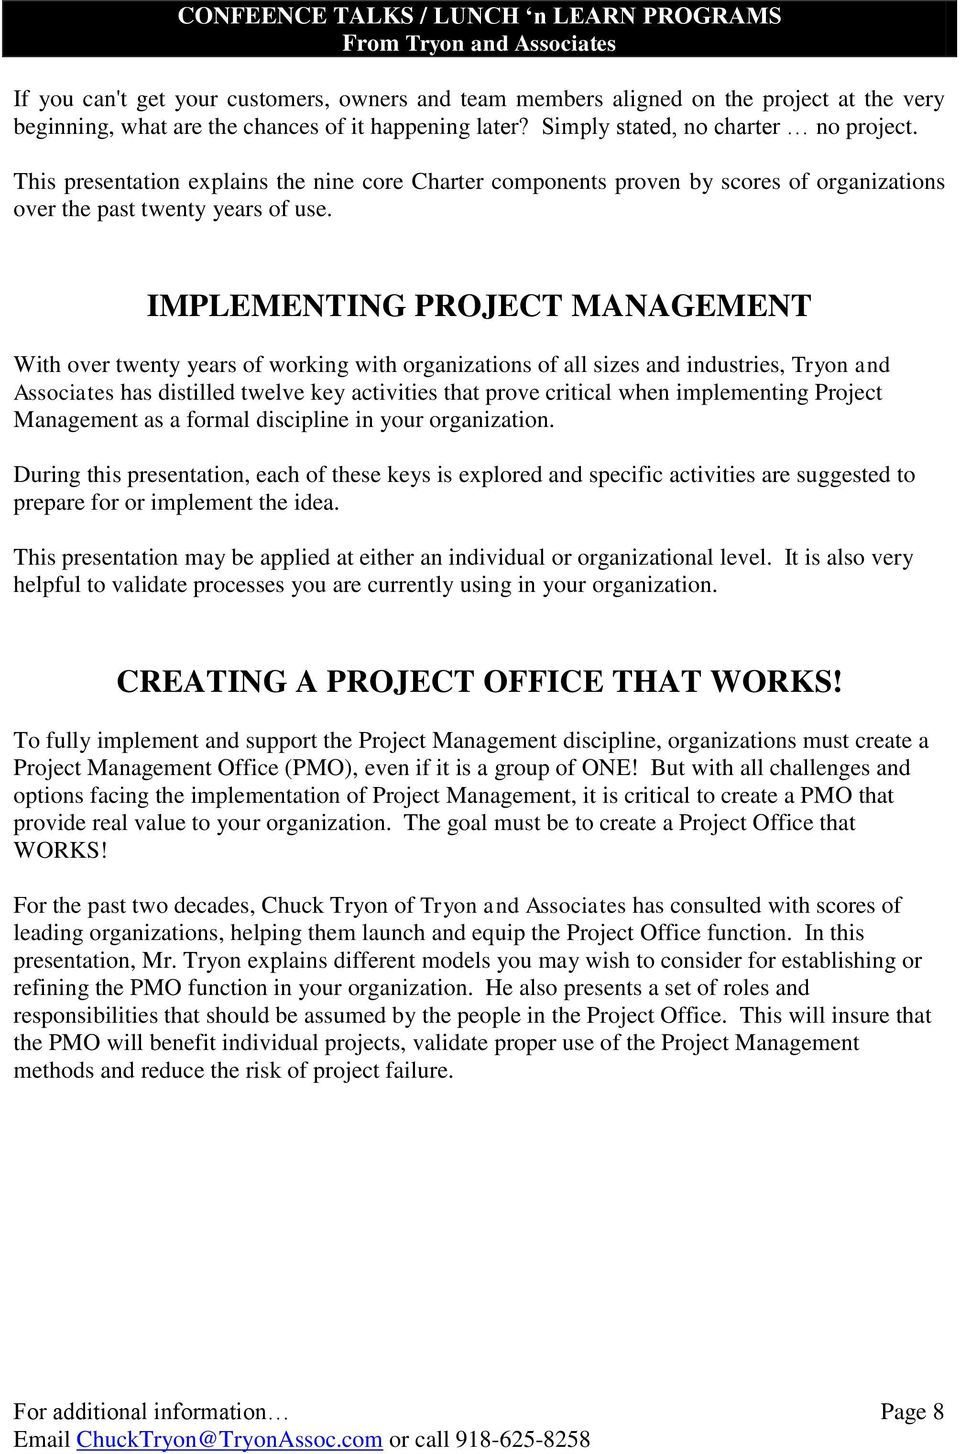 IMPLEMENTING PROJECT MANAGEMENT With over twenty years of working with organizations of all sizes and industries, Tryon and Associates has distilled twelve key activities that prove critical when